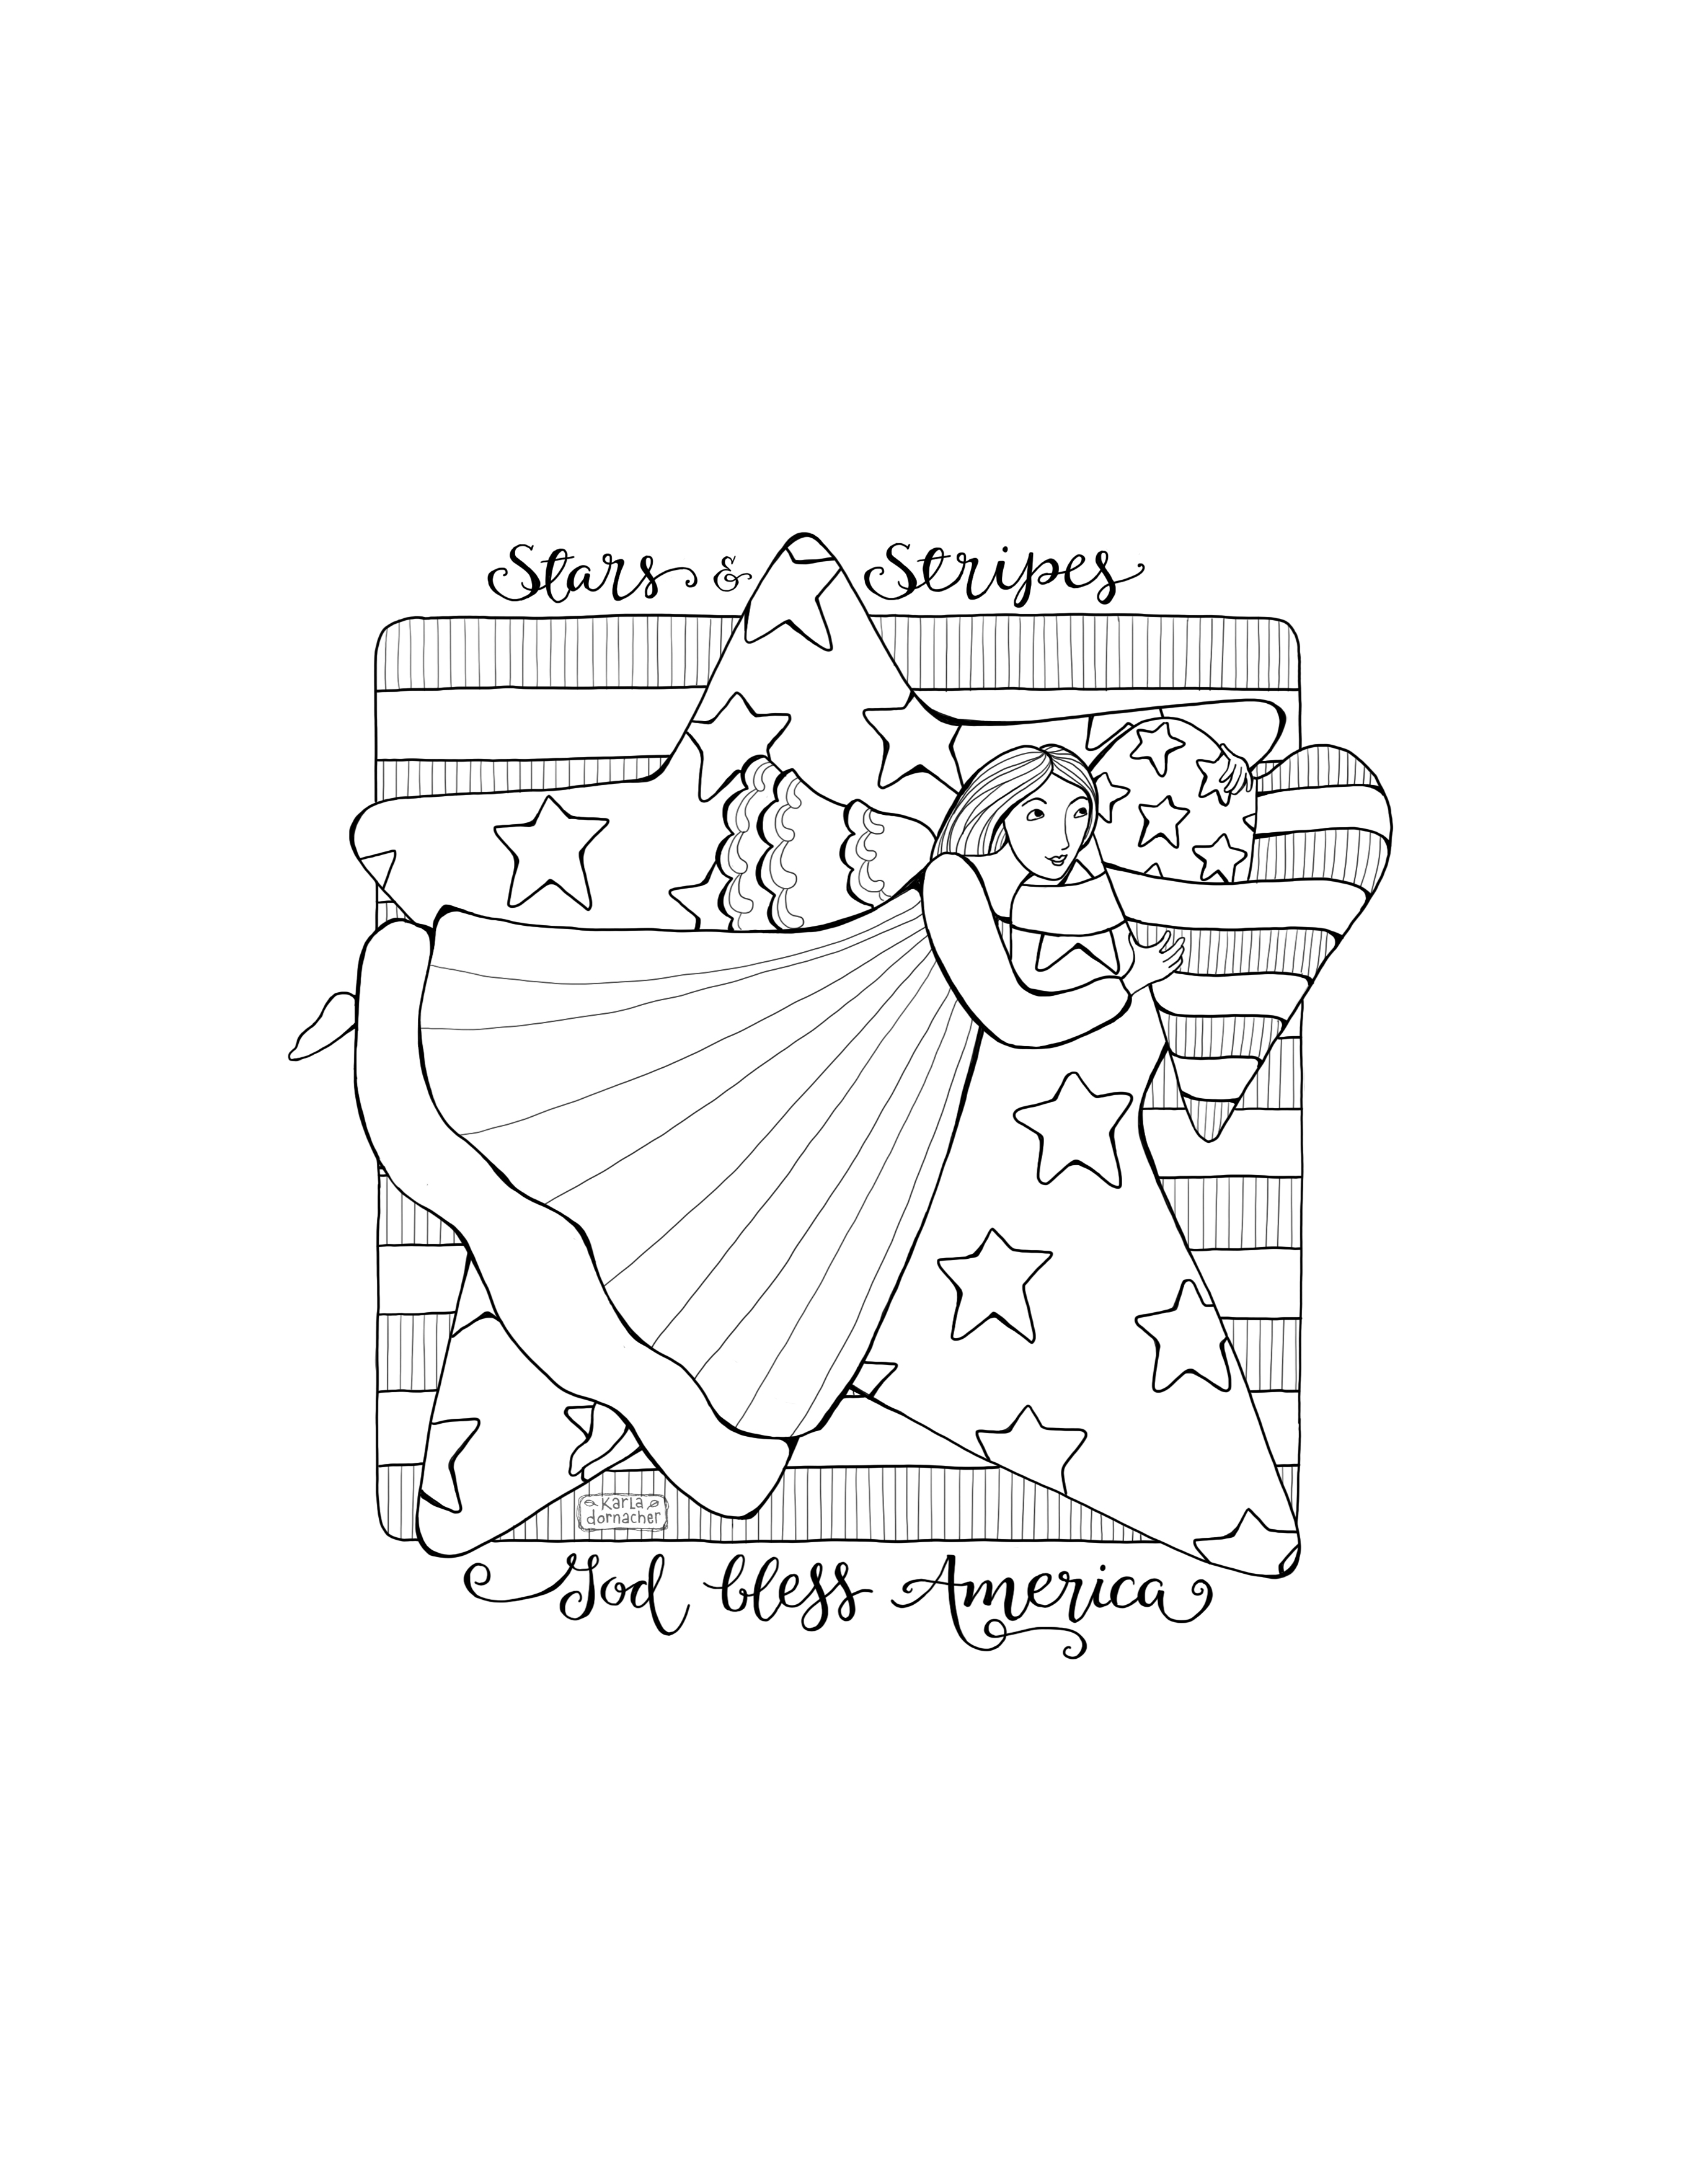 stars and stripes coloring pages free coloring page with color pencil video and tips stars and stripes coloring pages